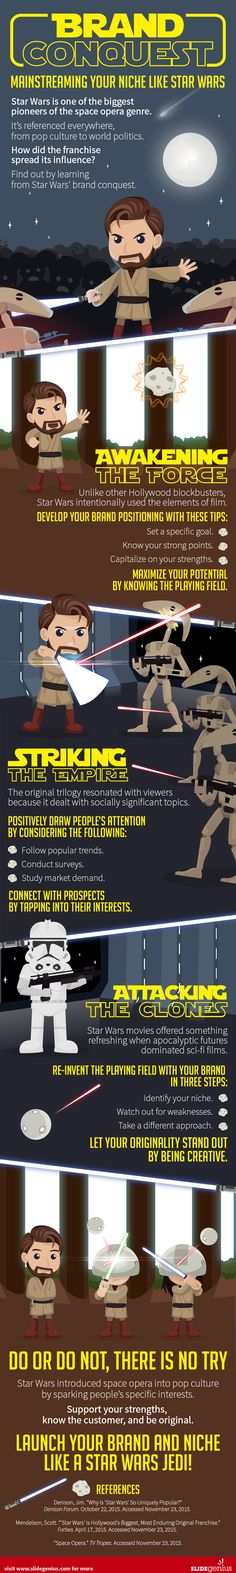 Brand Conquest: Mainstreaming Your Niche Like Star Wars